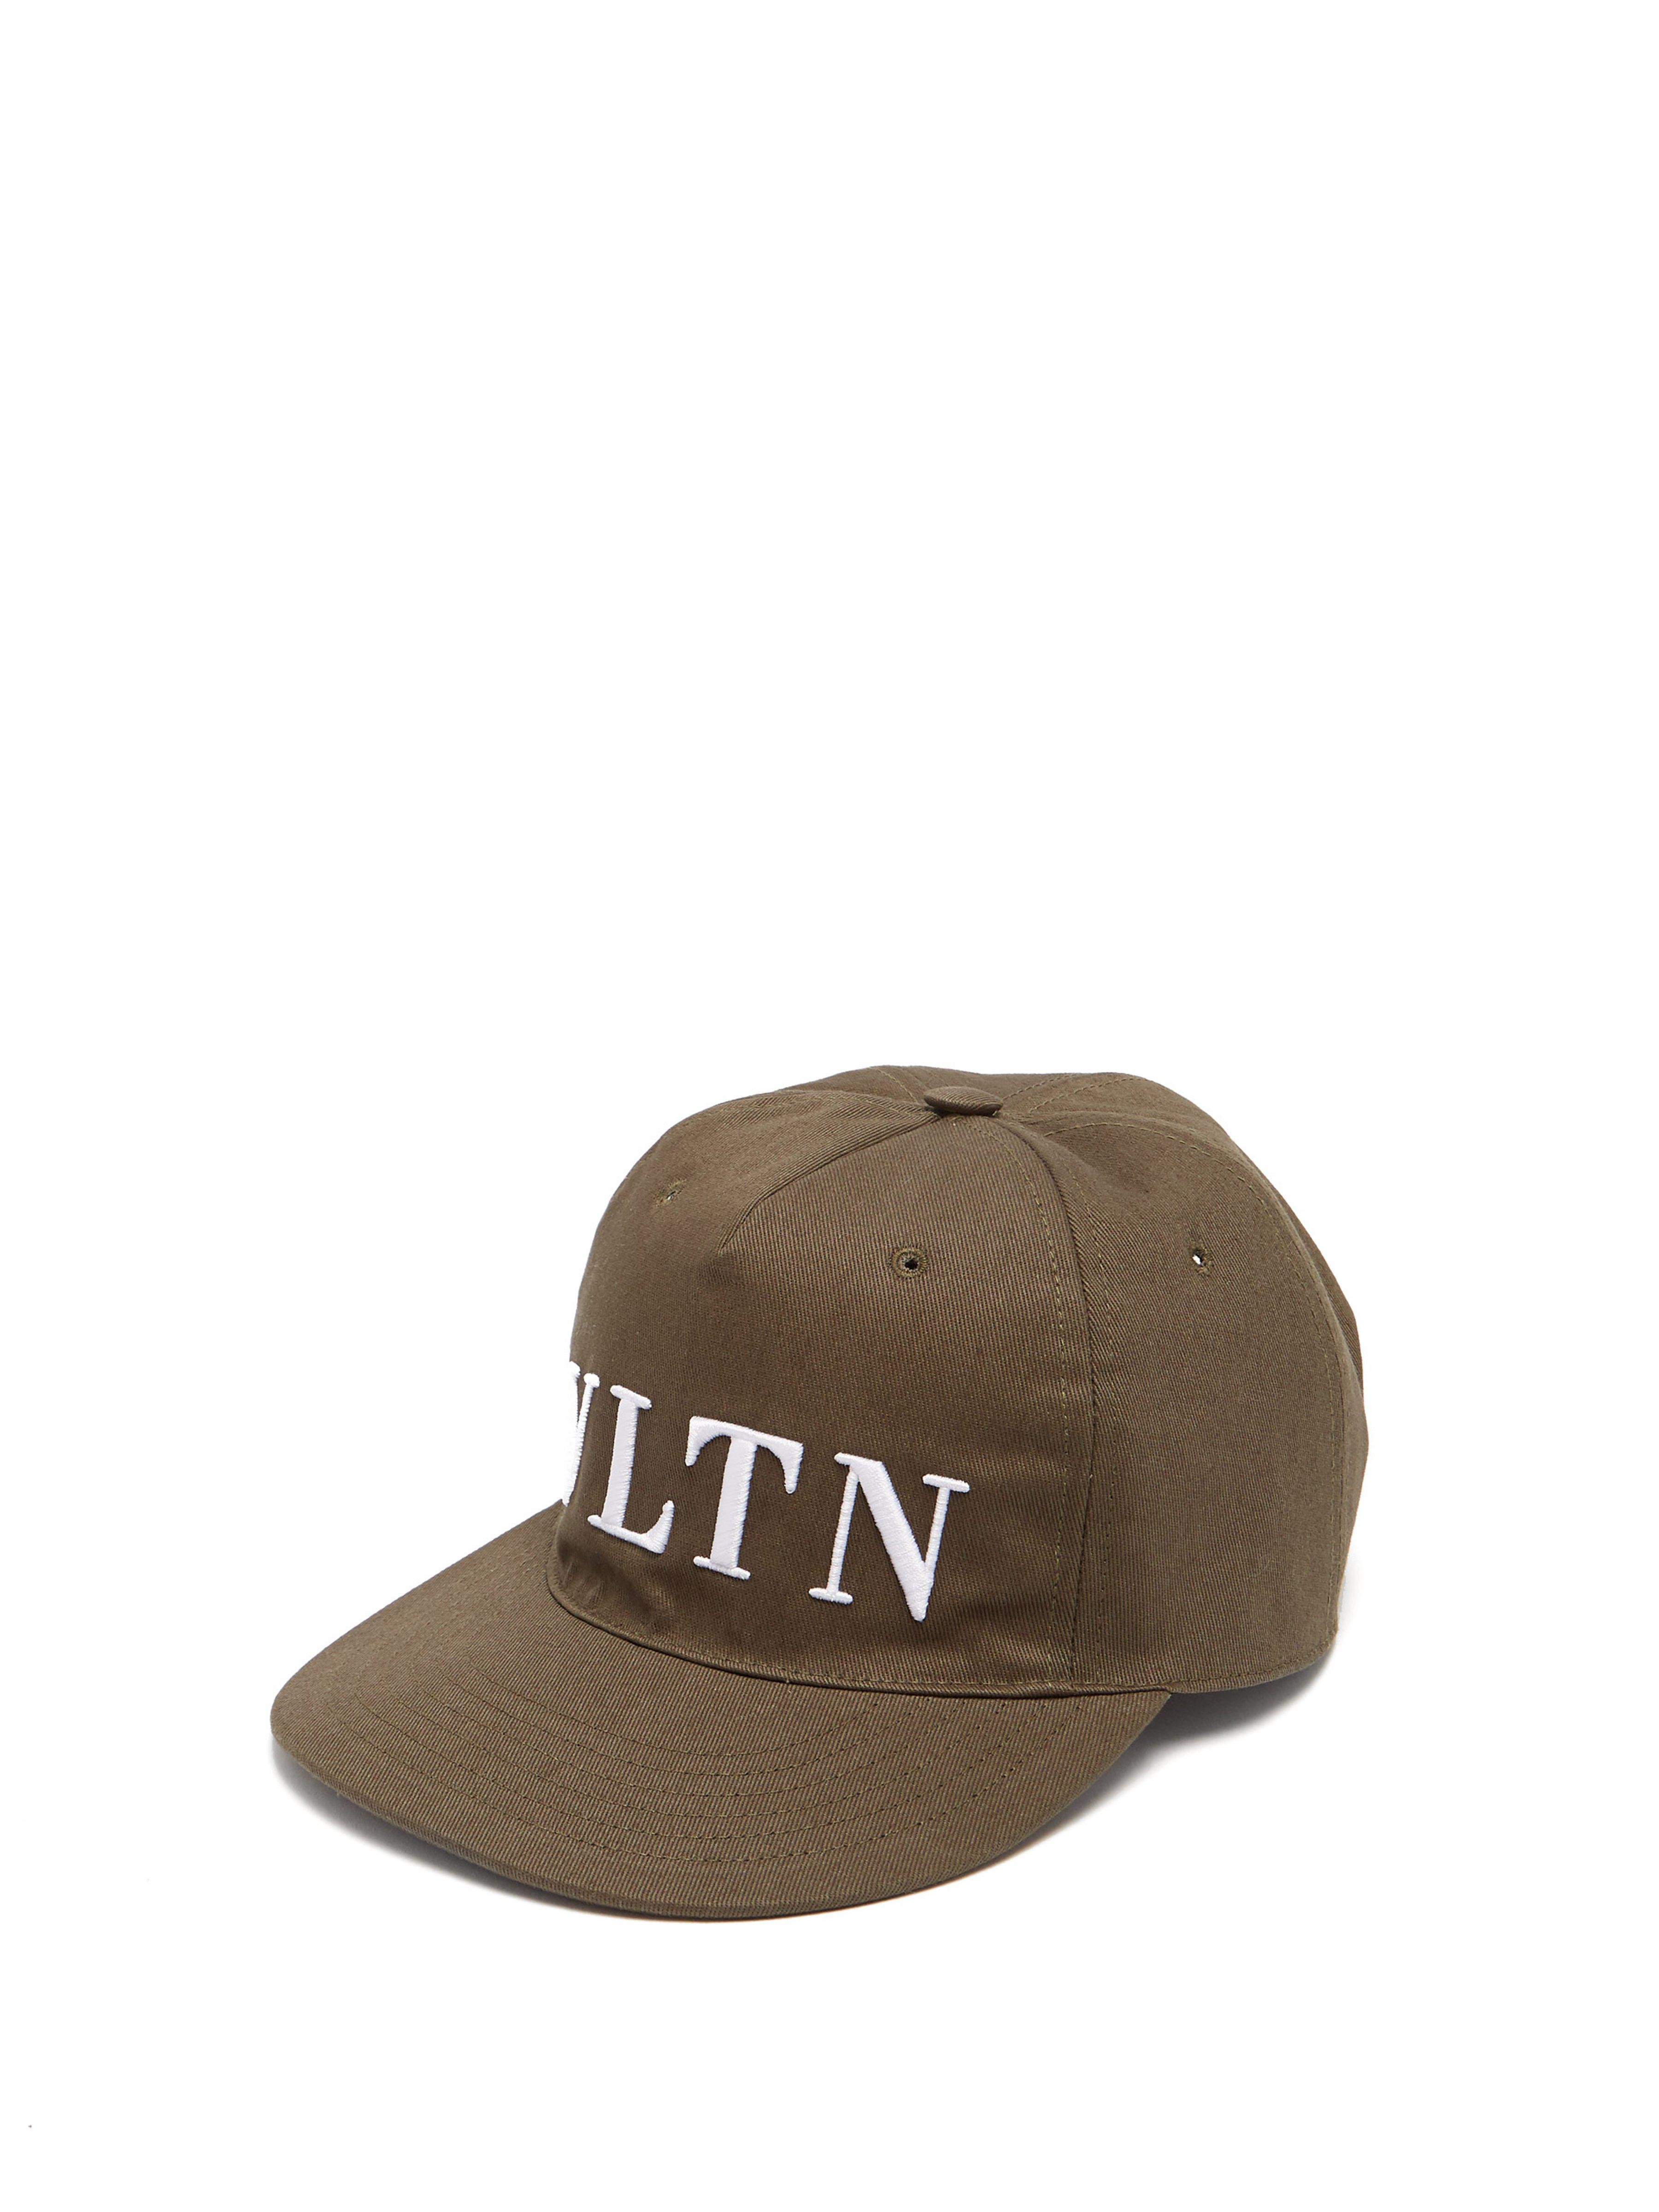 5355c4bfc1a Valentino Vltn Logo Embroidered Cotton Cap for Men - Lyst